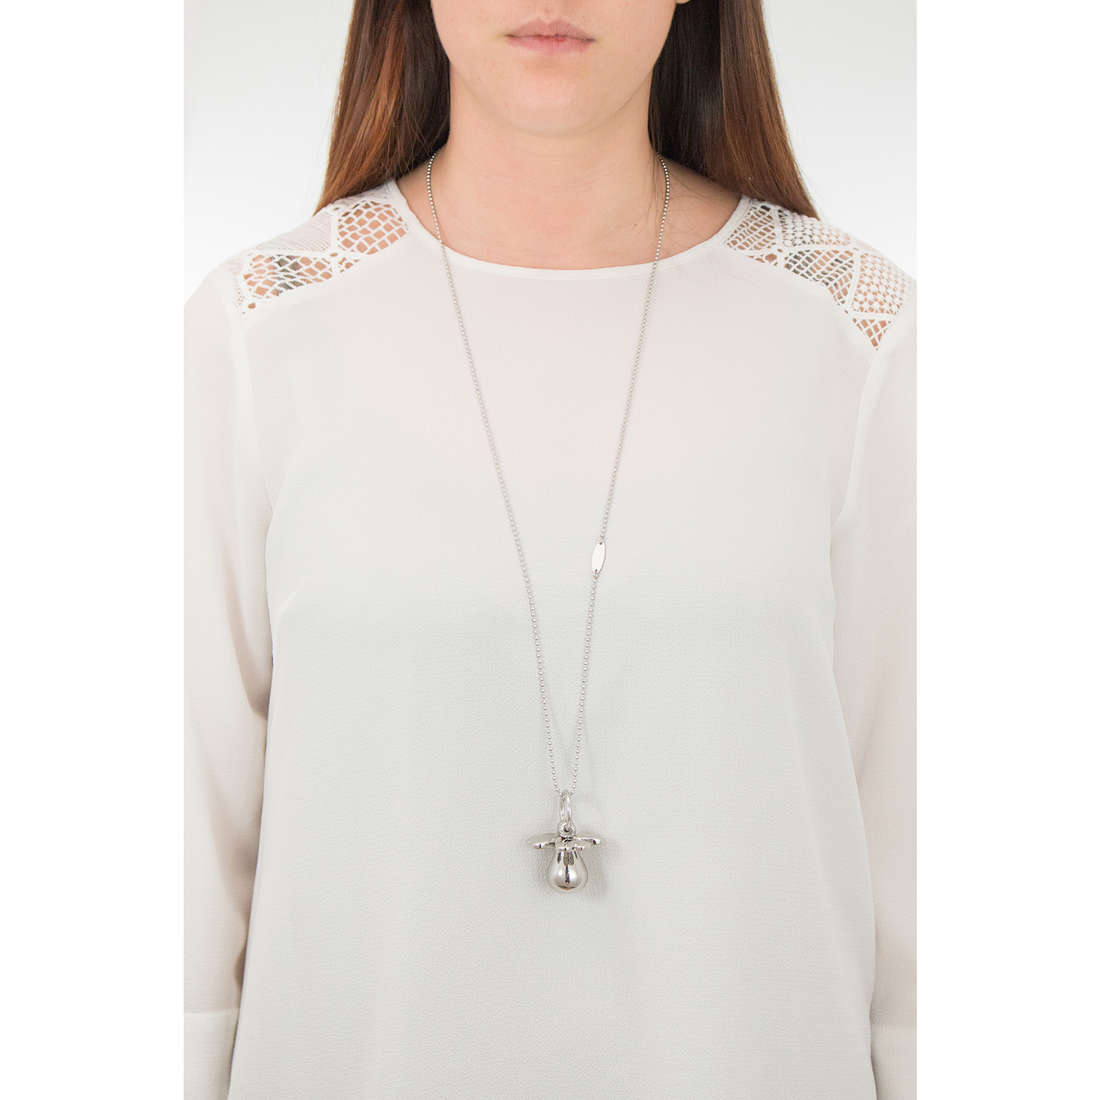 Luca Barra necklaces woman LBCK1050 photo wearing